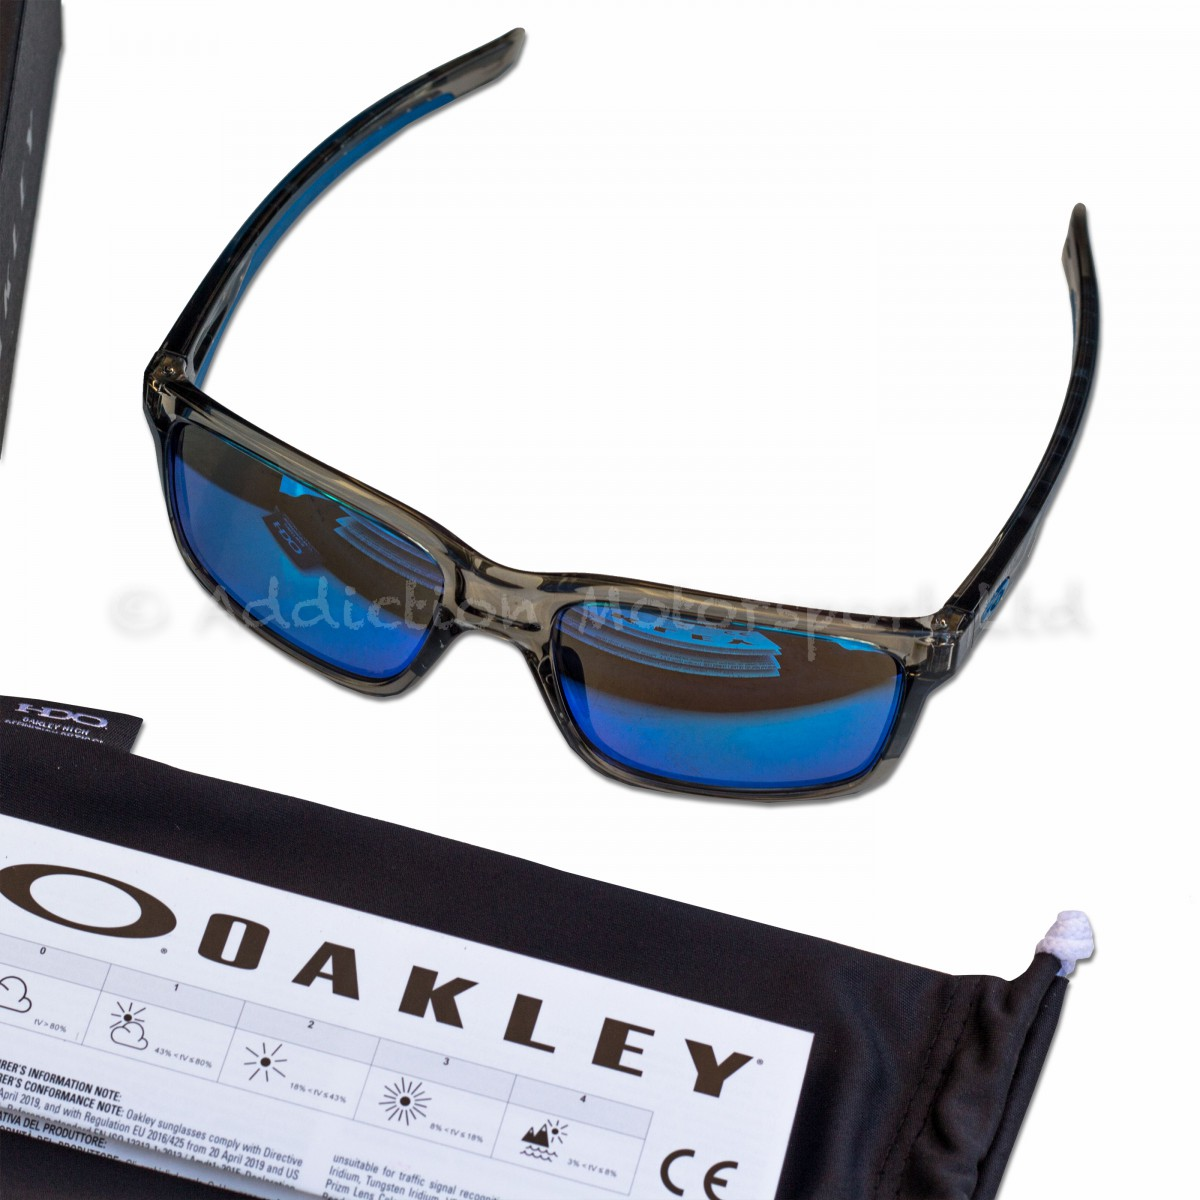 333e12dd2ba Oakley Mainlink Sunglasses in Grey Ink Sapphire Iridium 0O9264-03 Motogp